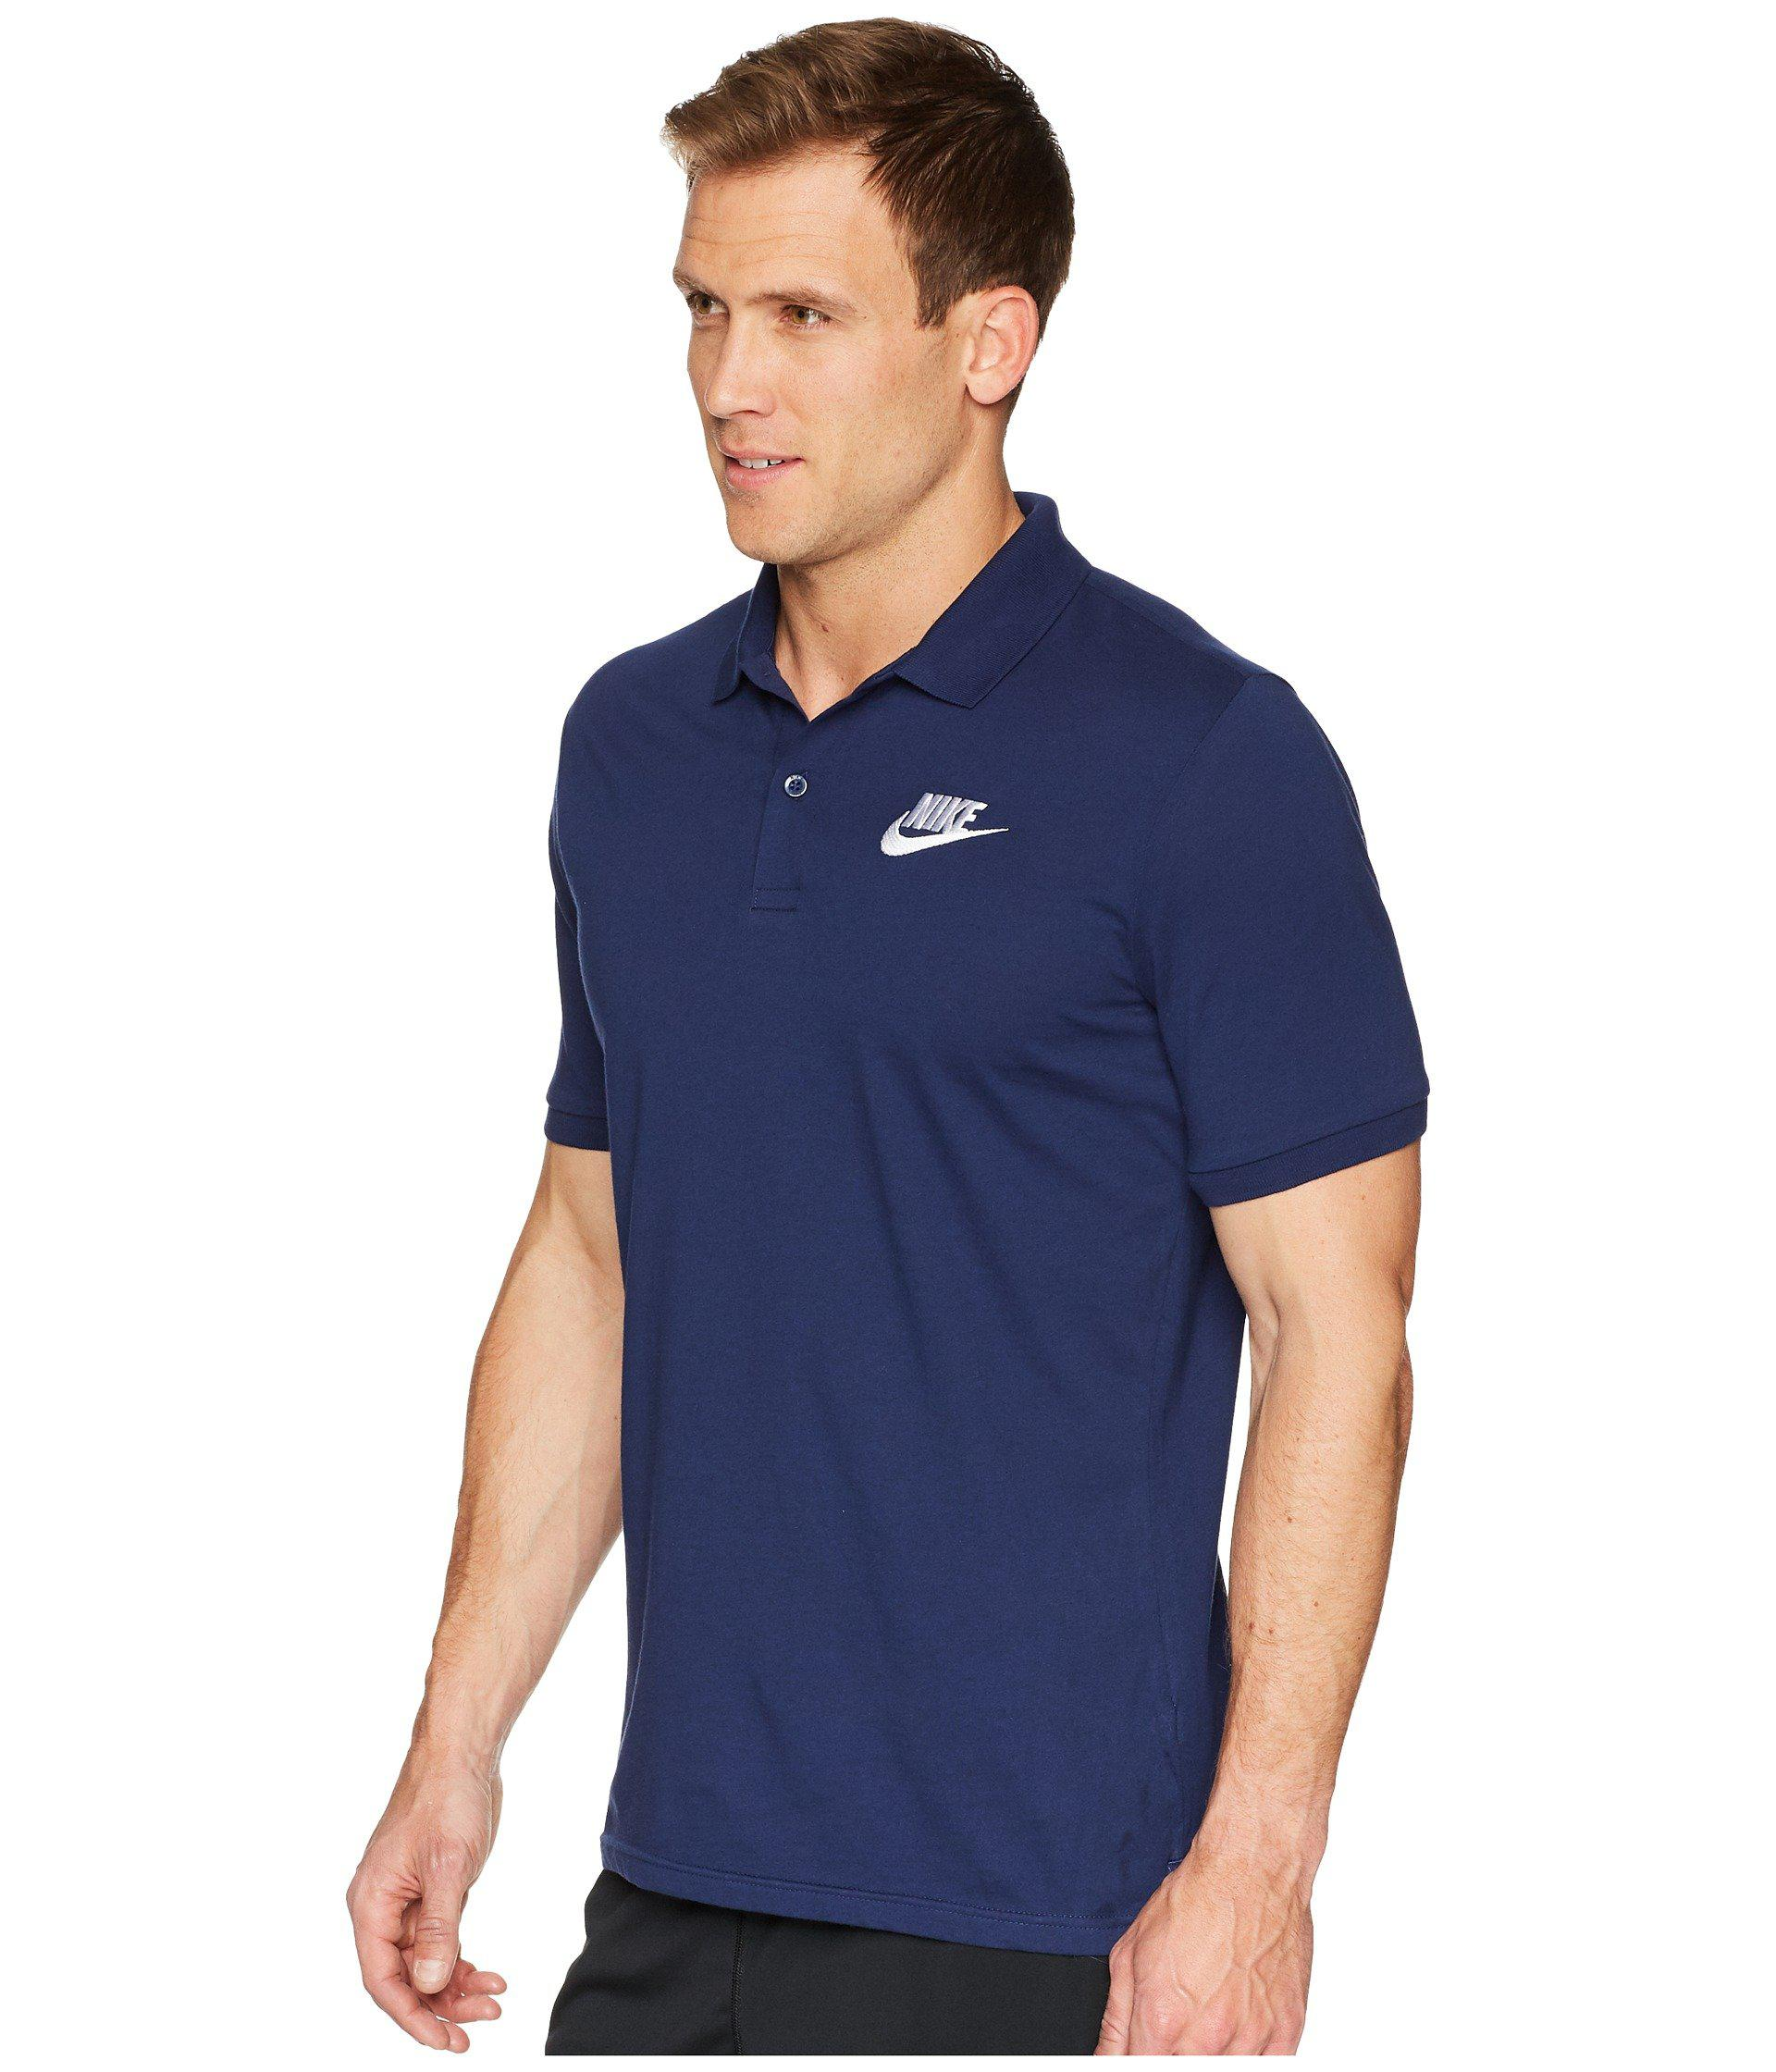 a36396ea94e Lyst - Nike Nsw Polo Jersey Matchup in Blue for Men - Save 24%